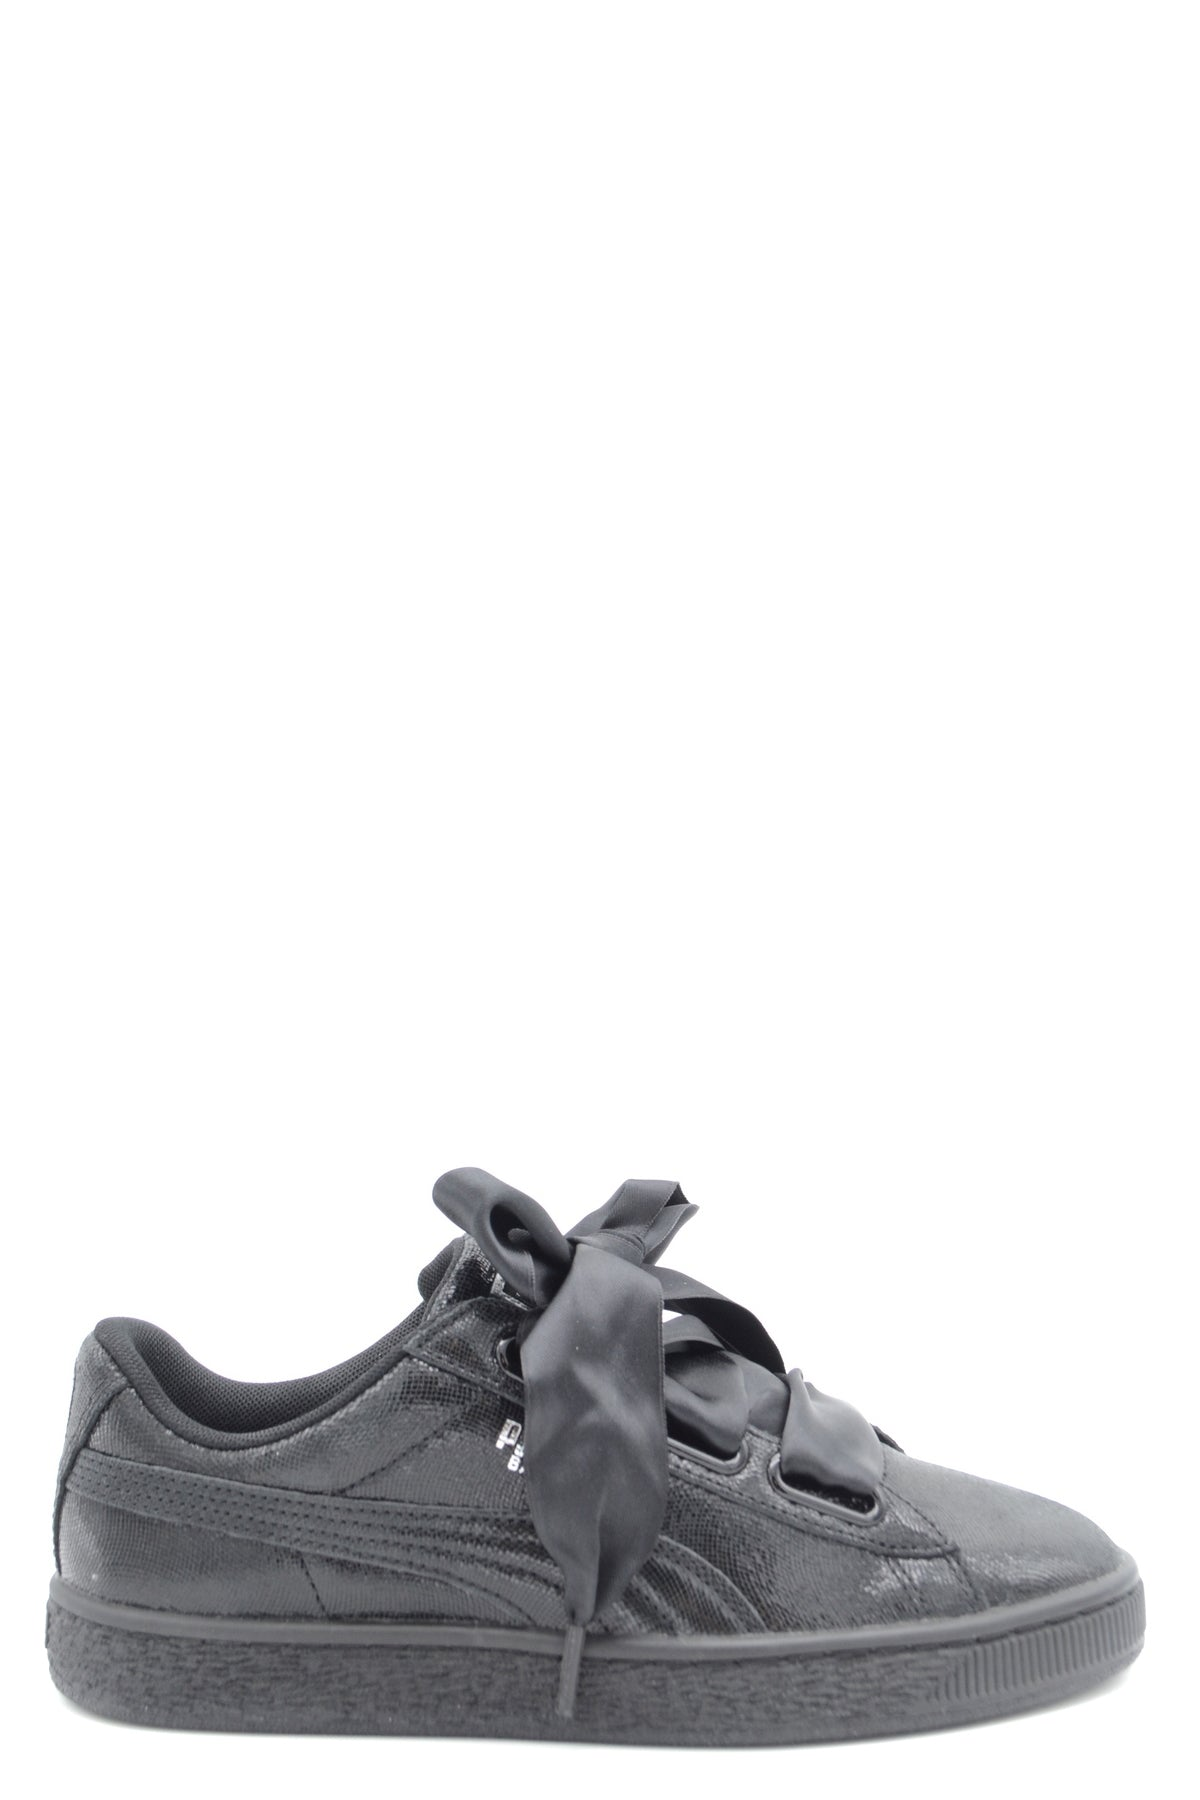 Shoes Puma-Sneakers - WOMAN-36-Product Details Type Of Accessory: ShoesSeason: Spring / SummerTerms: New With LabelMain Color: BlackGender: WomanMade In: VietnamManufacturer Part Number: 364108 01Size: EuYear: 2018Composition: Tissue 100%-Keyomi-Sook